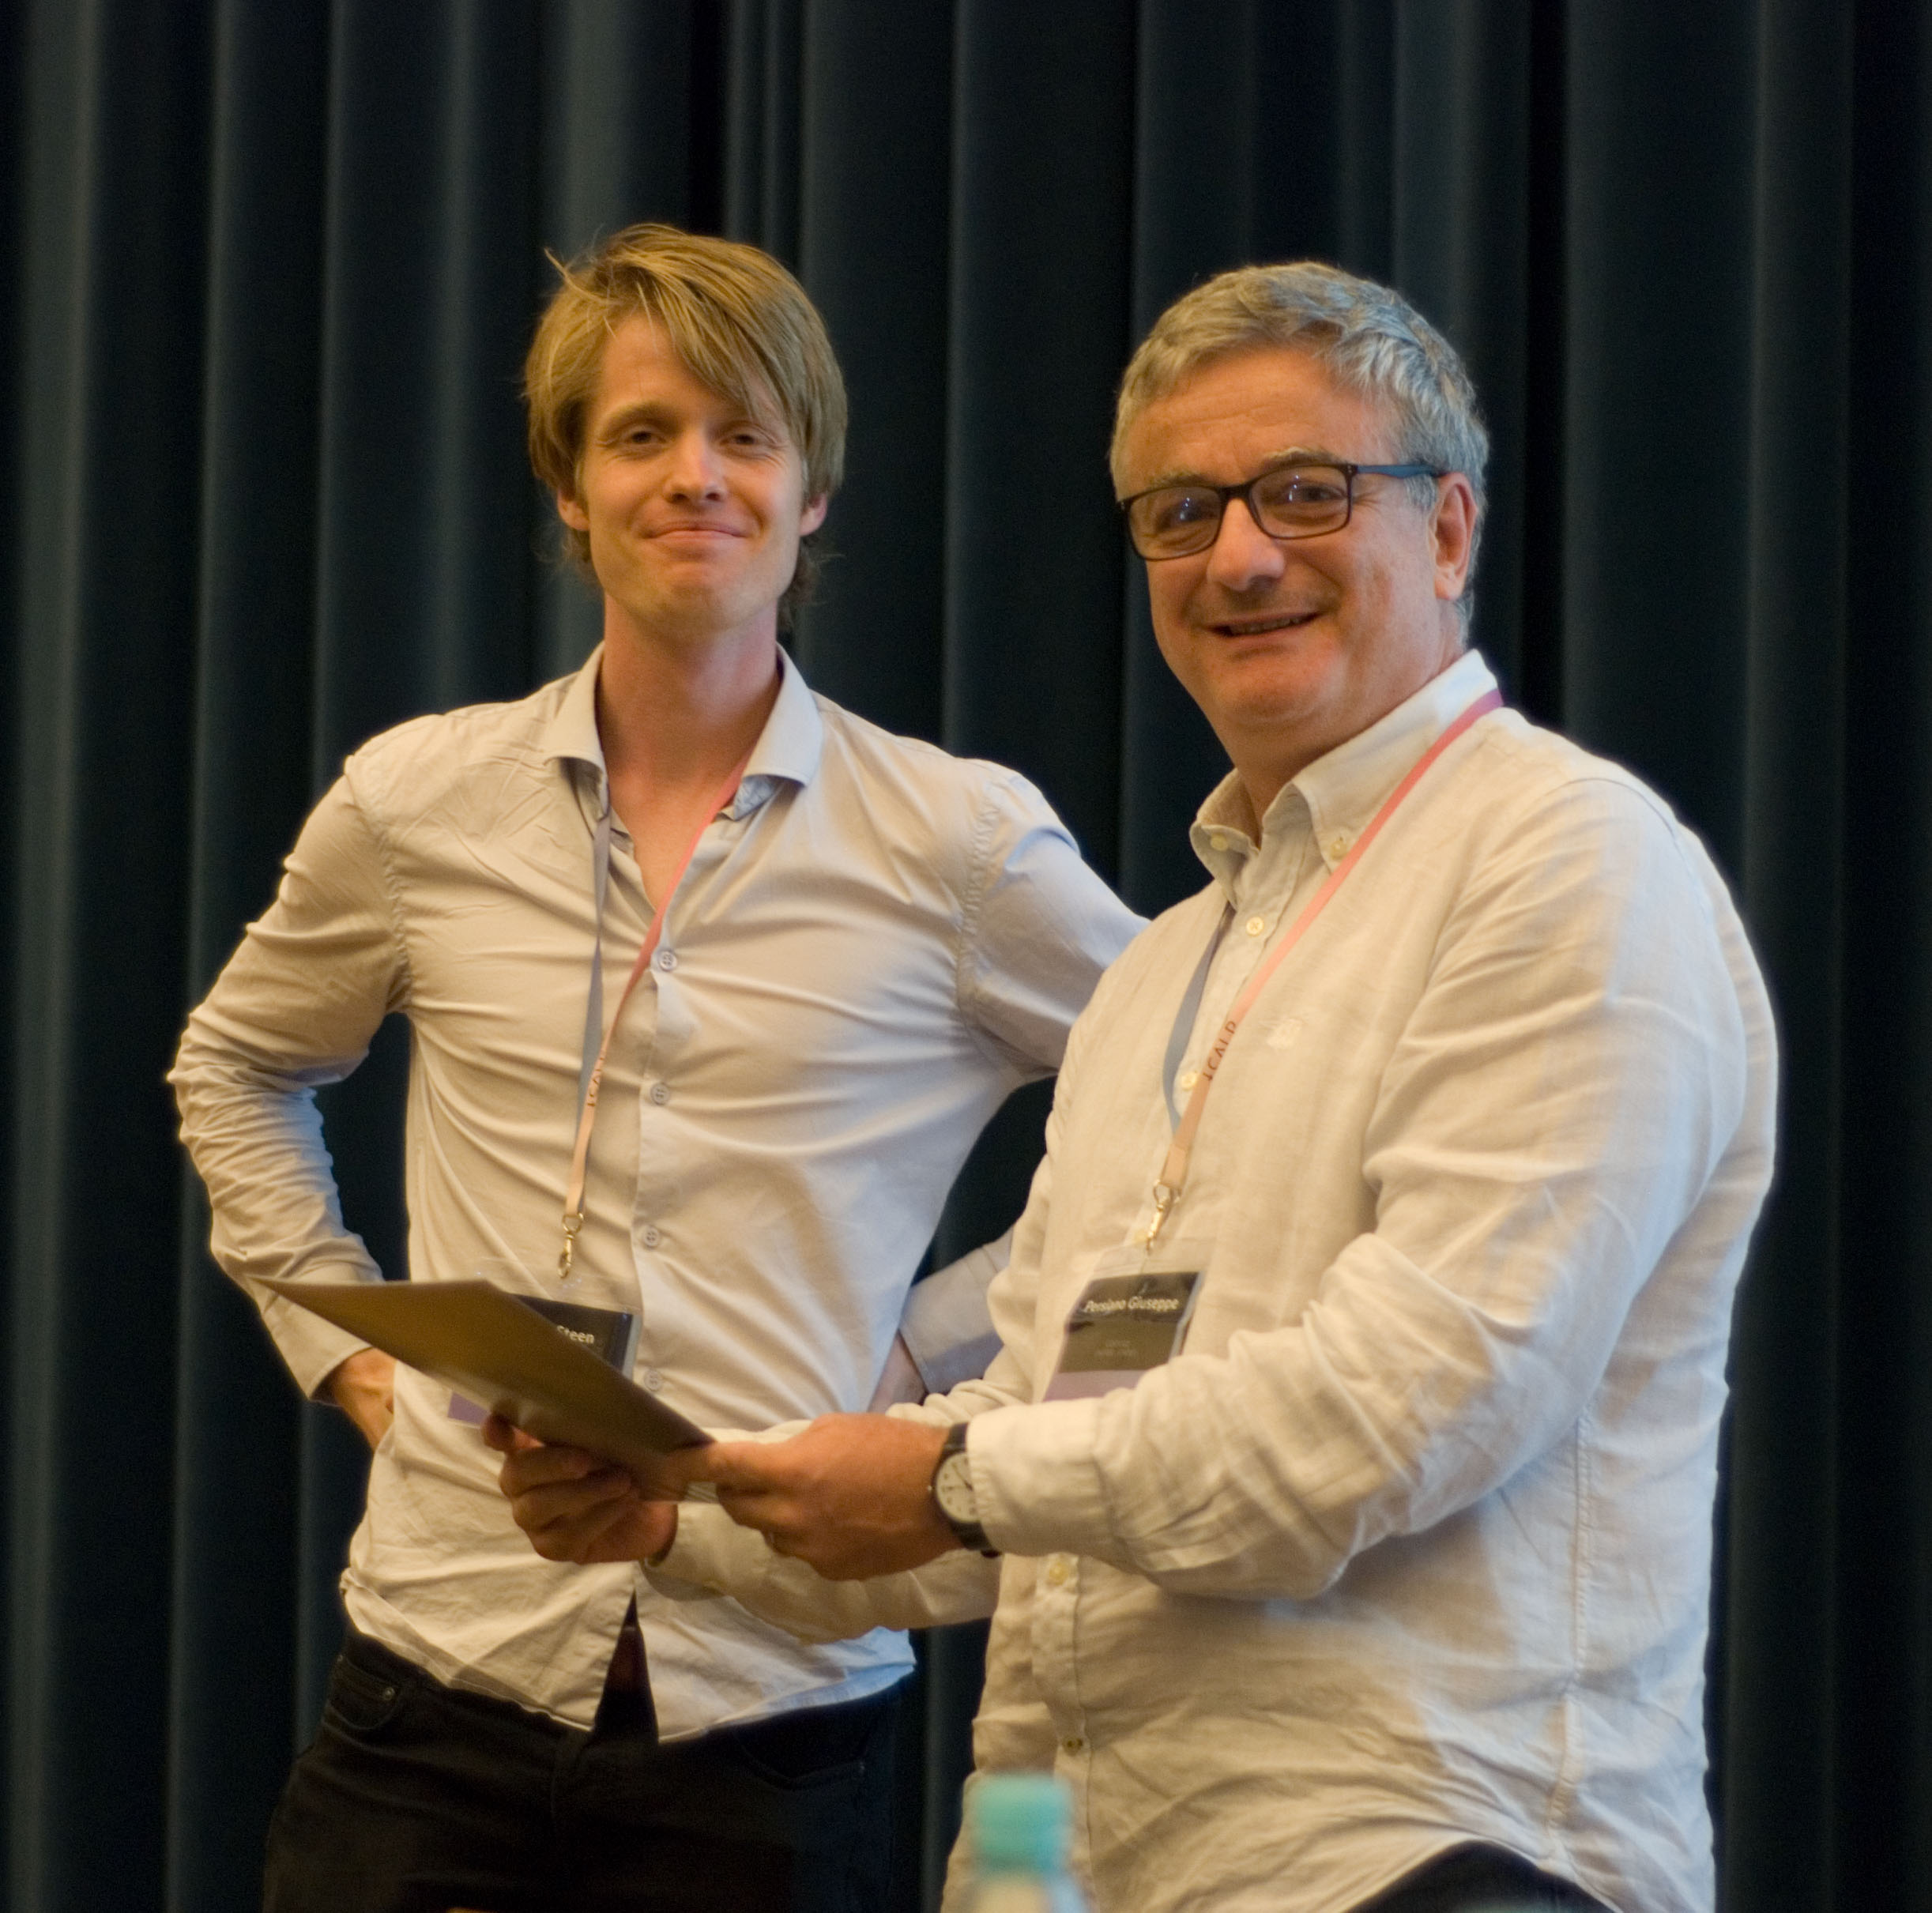 Steen Vester receives EATCS Distinguished Dissertation Award